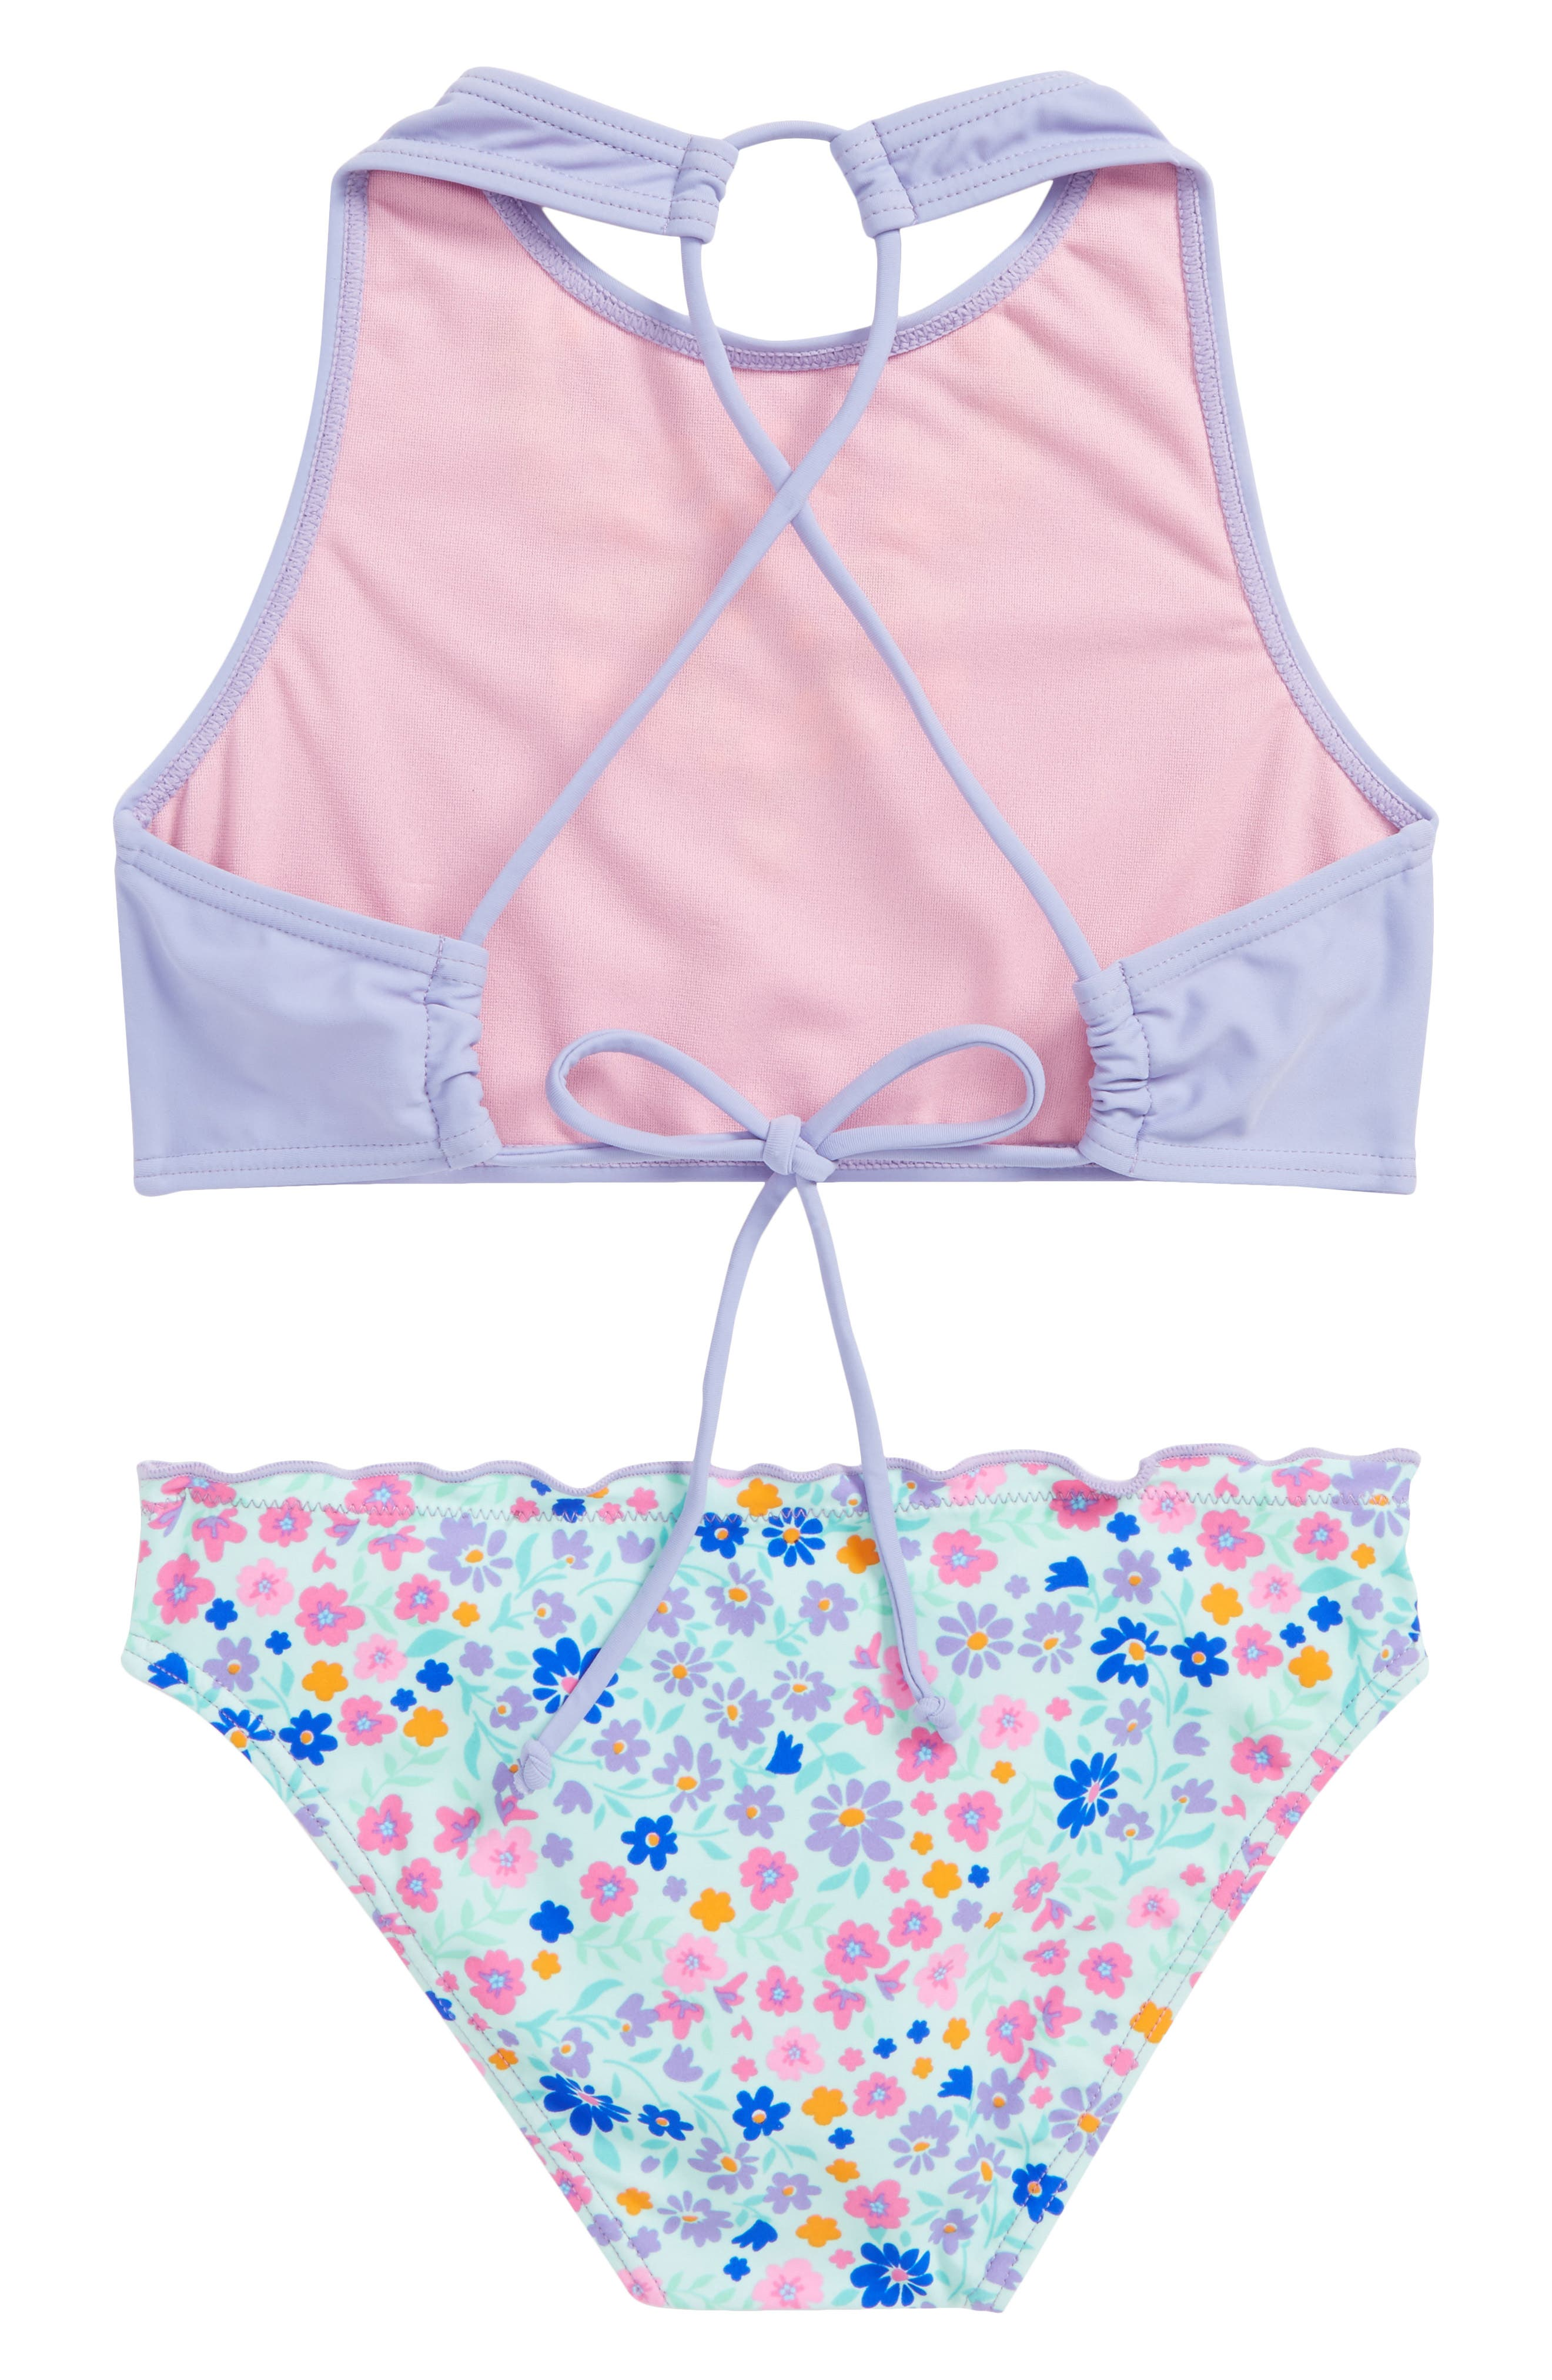 In Bloom Two-Piece Swimsuit,                             Alternate thumbnail 2, color,                             400